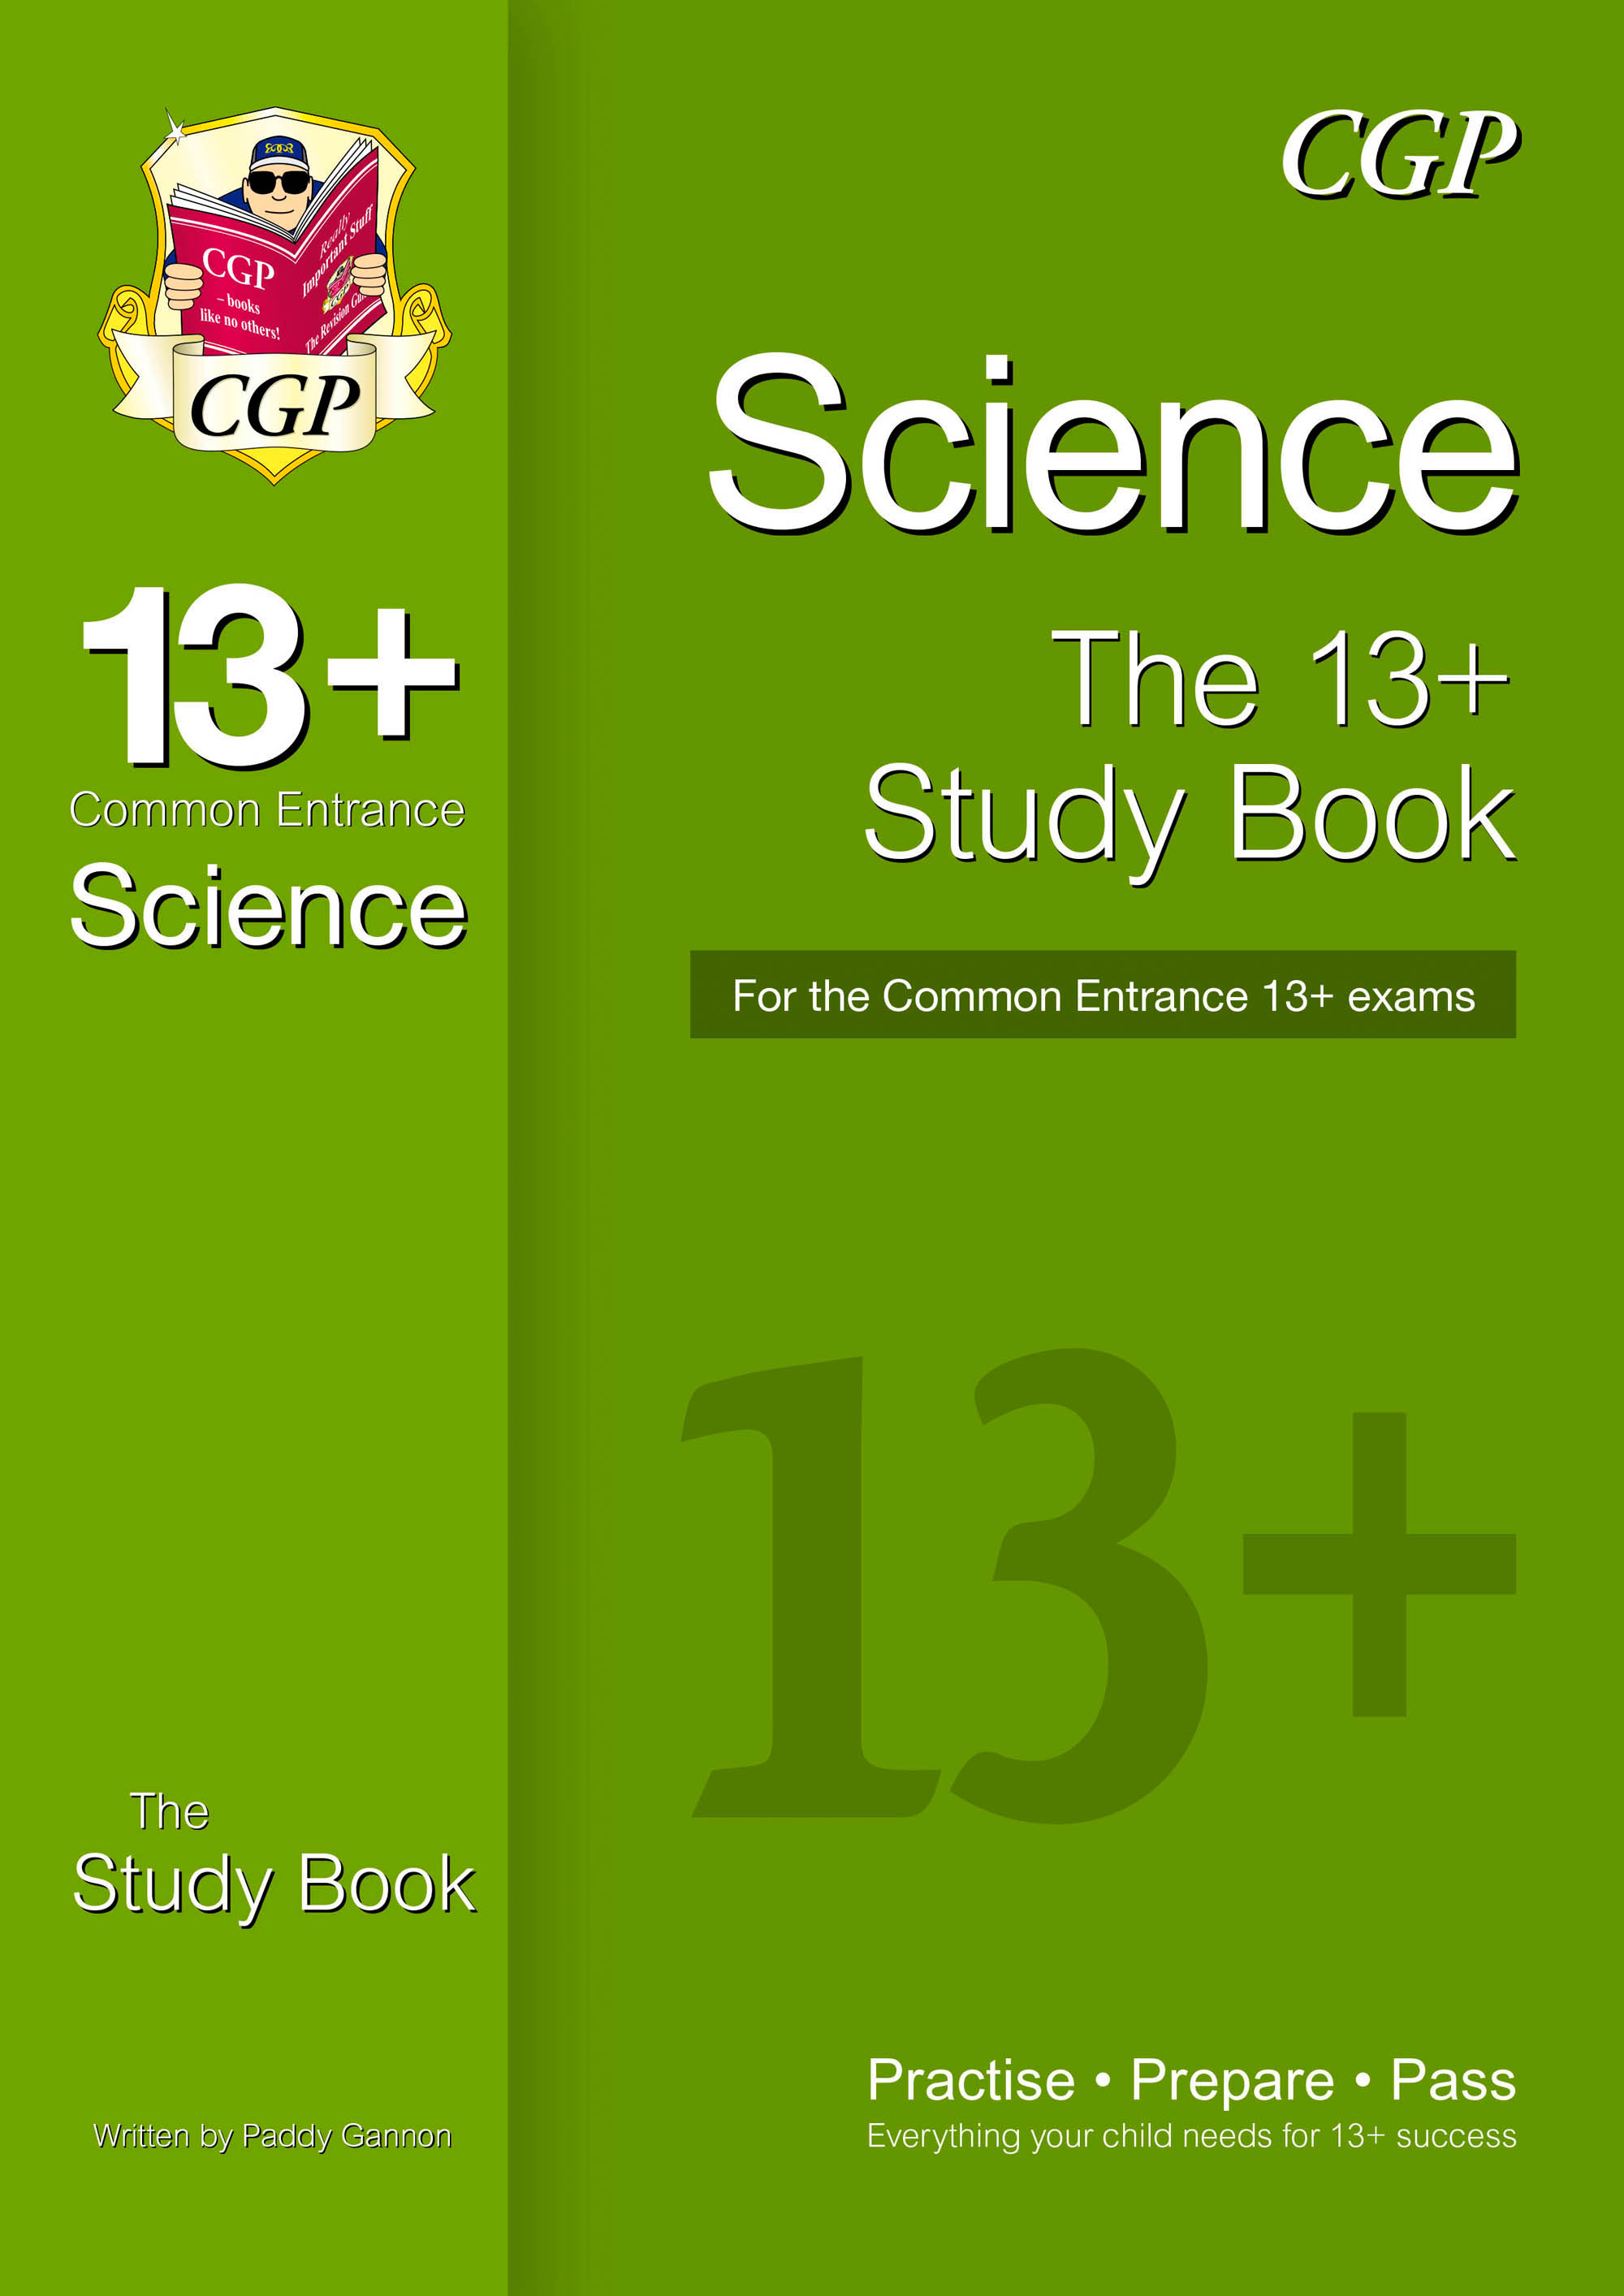 SIRT3DK - New 13+ Science Study Book for the Common Entrance Exams